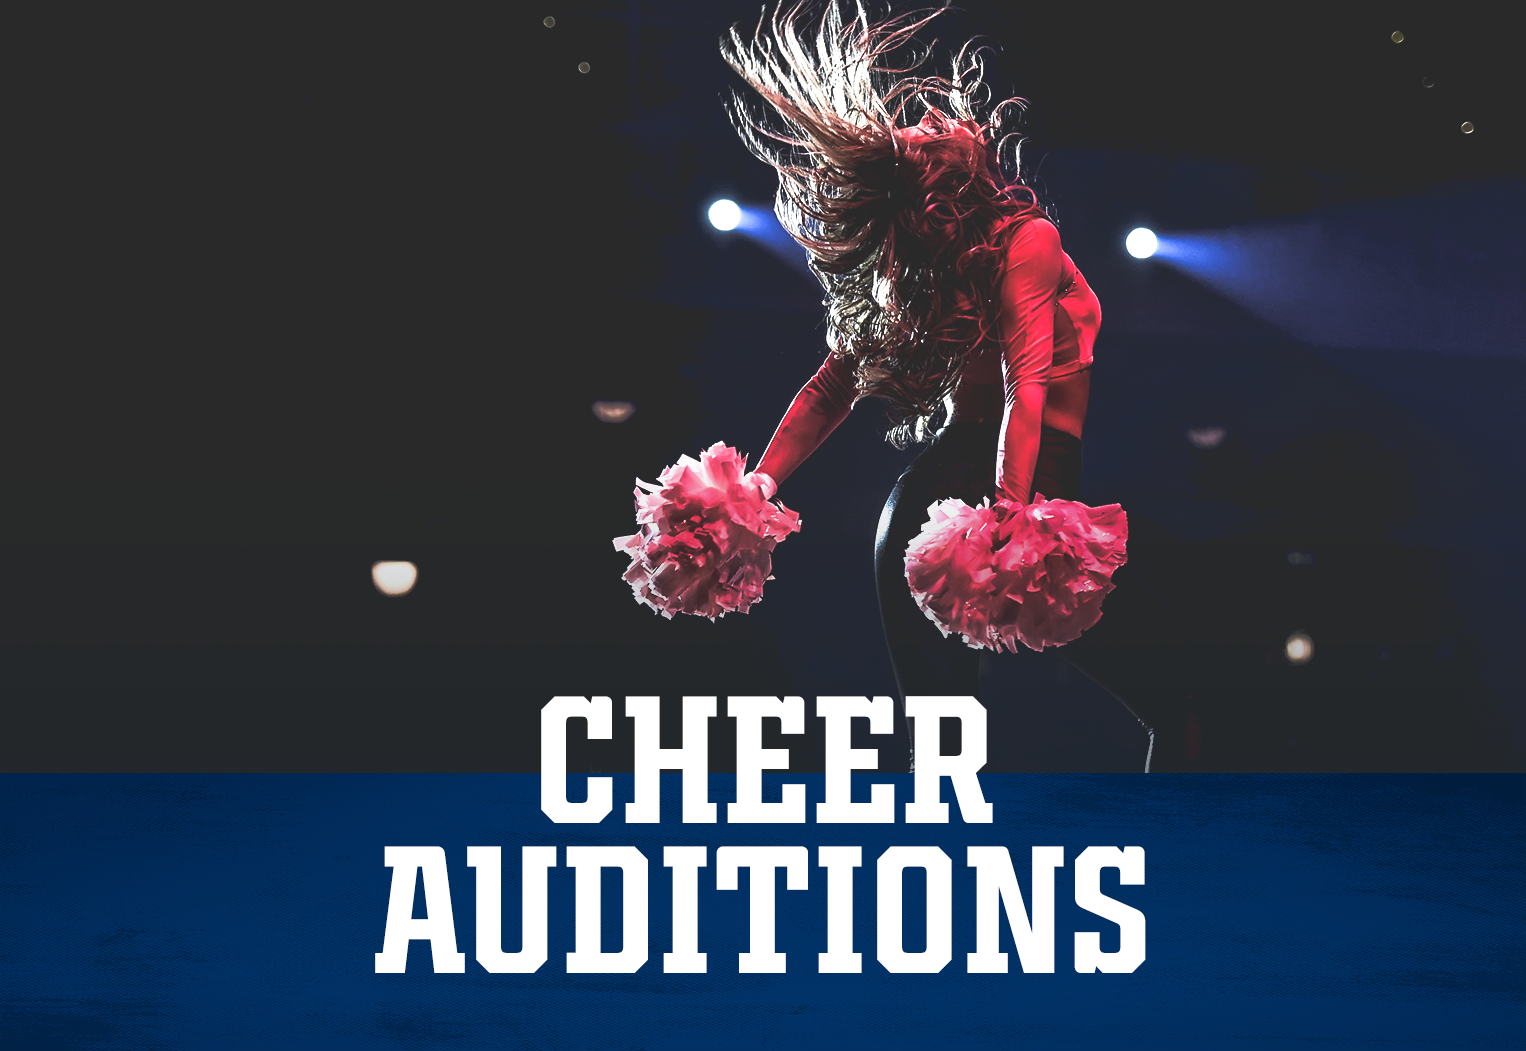 Indianapolis Colts Cheer Auditions